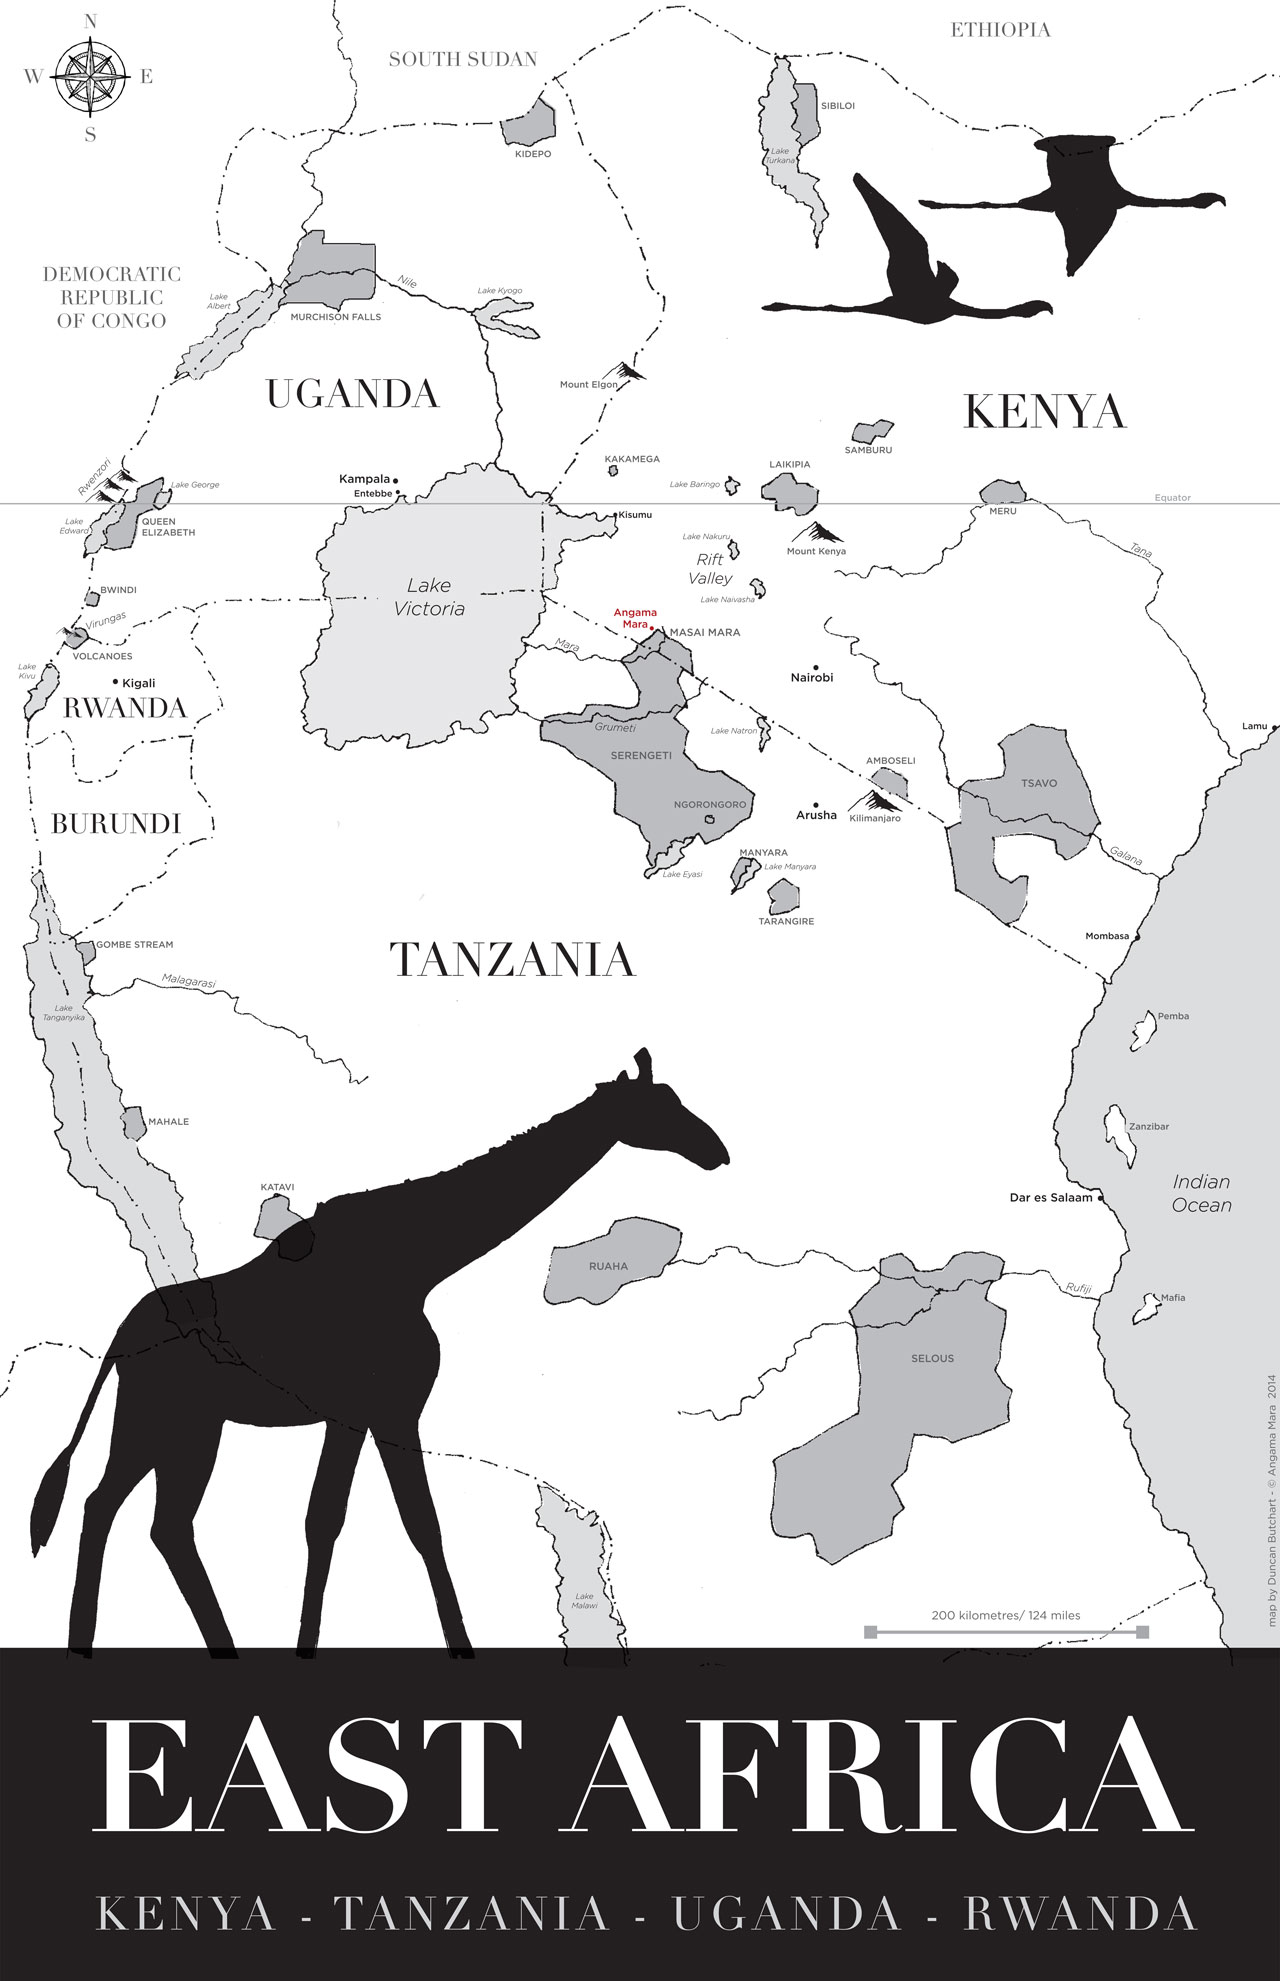 Map by Duncan Butchart © Angama Mara.